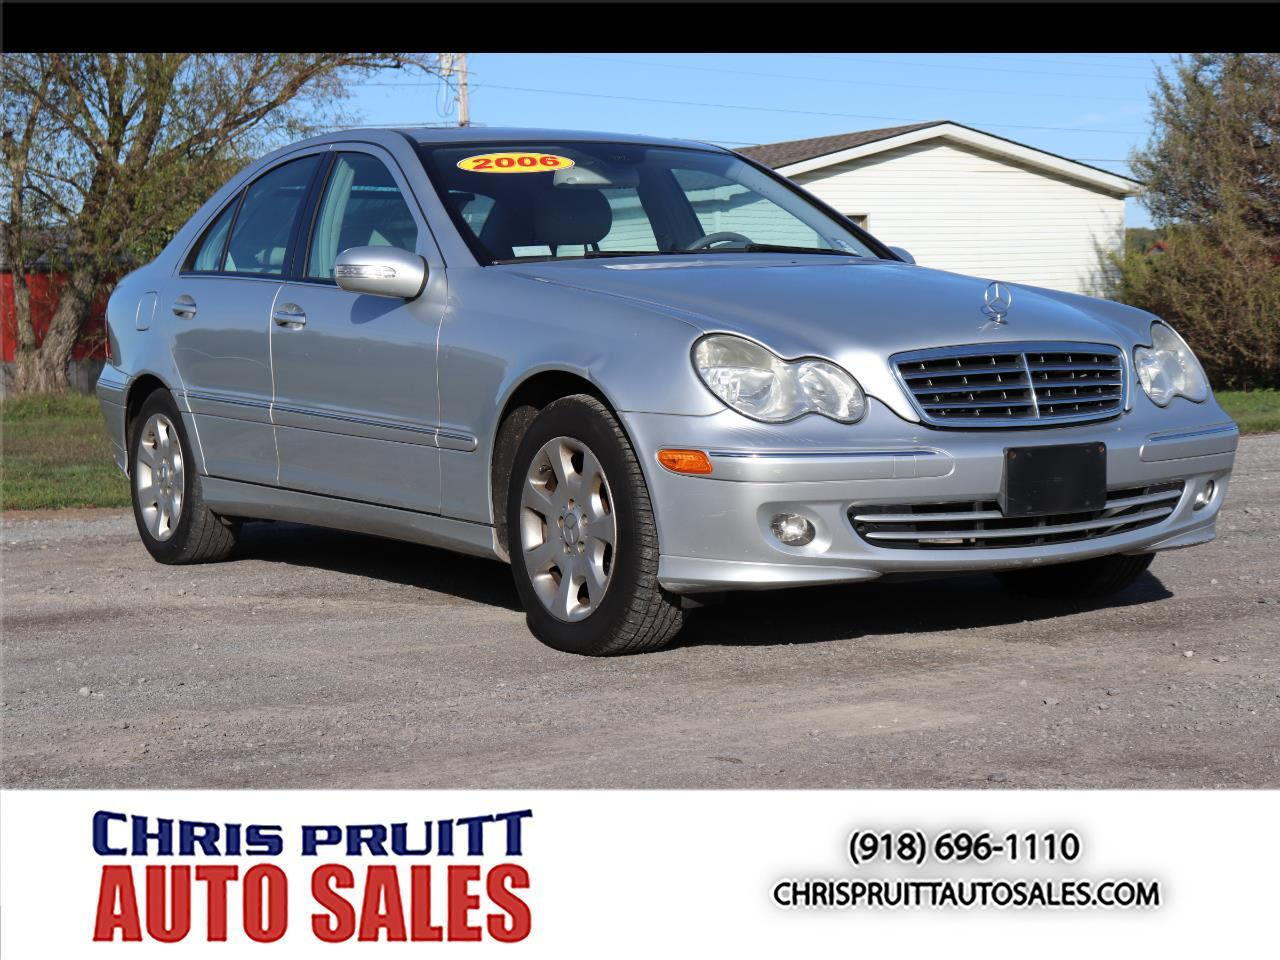 2006 Mercedes-Benz C-Class 4dr Luxury Sdn 3.0L